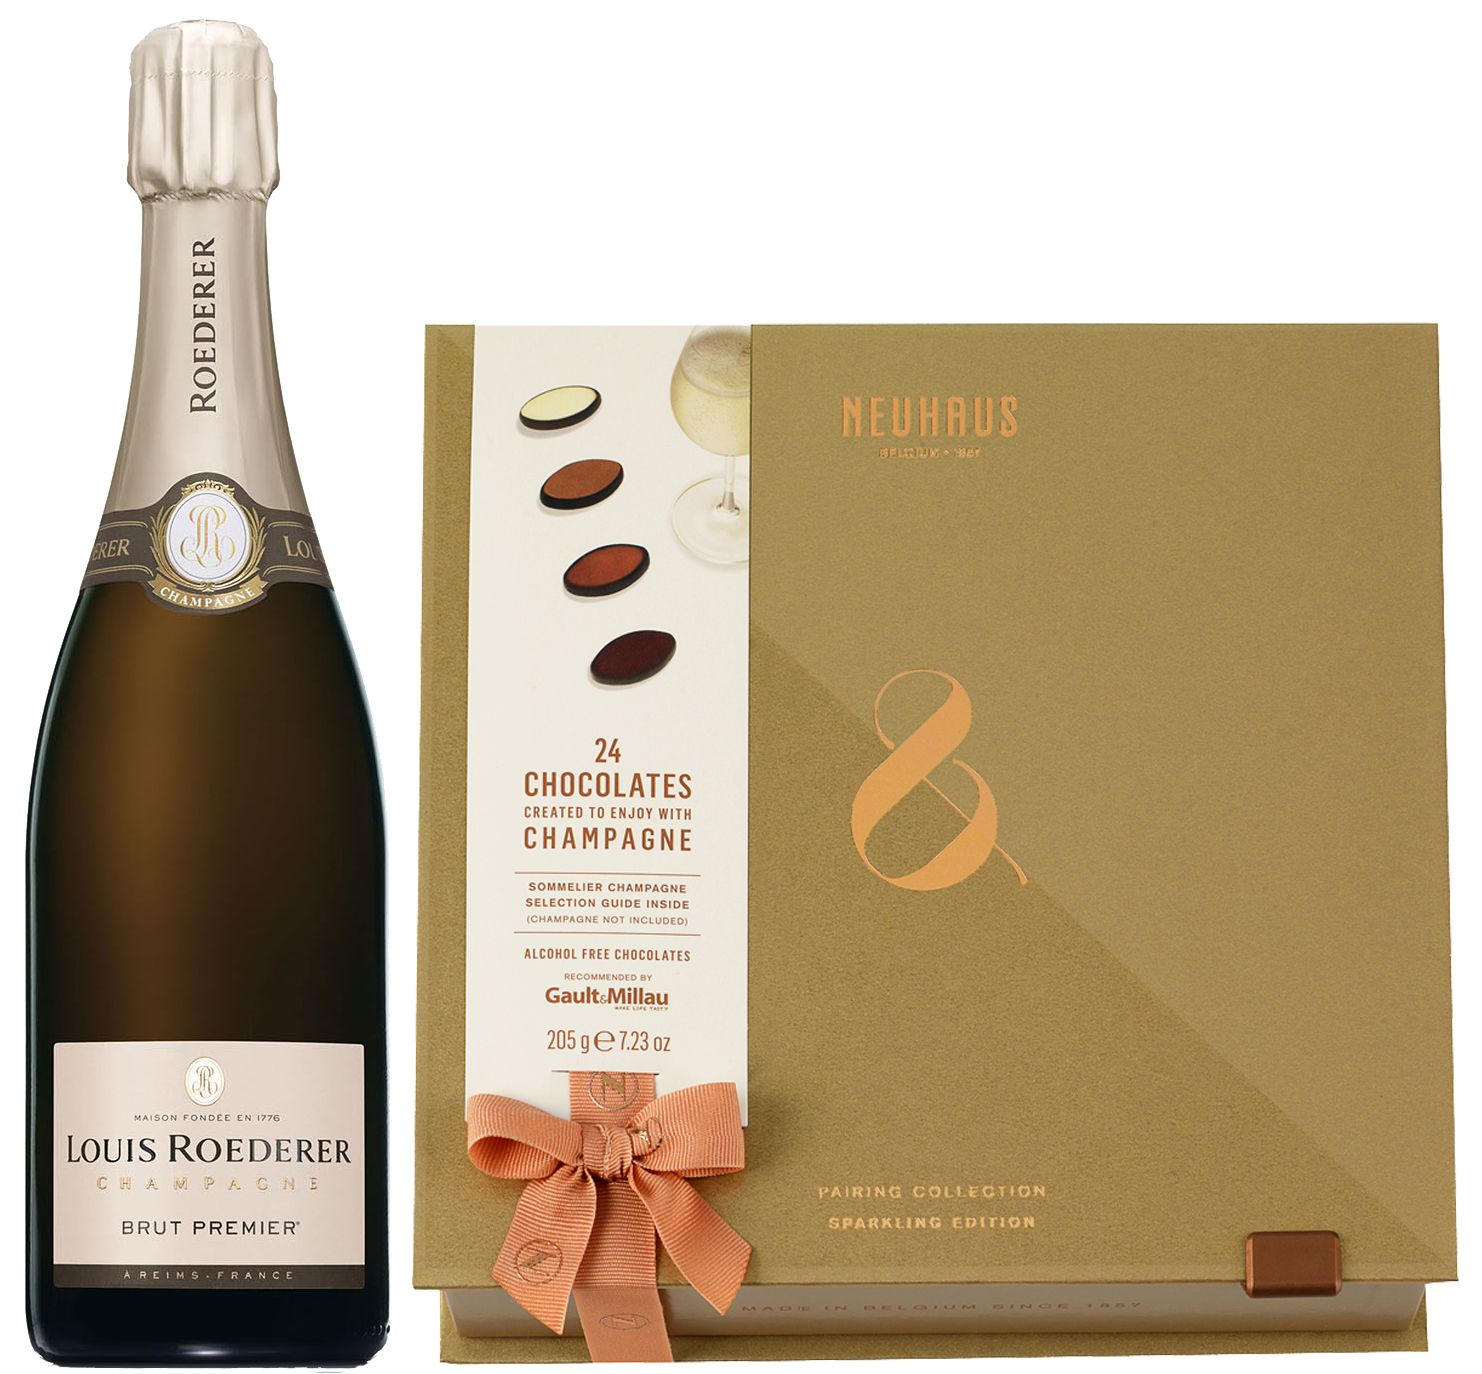 wine.com Louis Roederer Brut Premier & Neuhaus Pairing Collection – Sparkling Edition  Gift Product Image